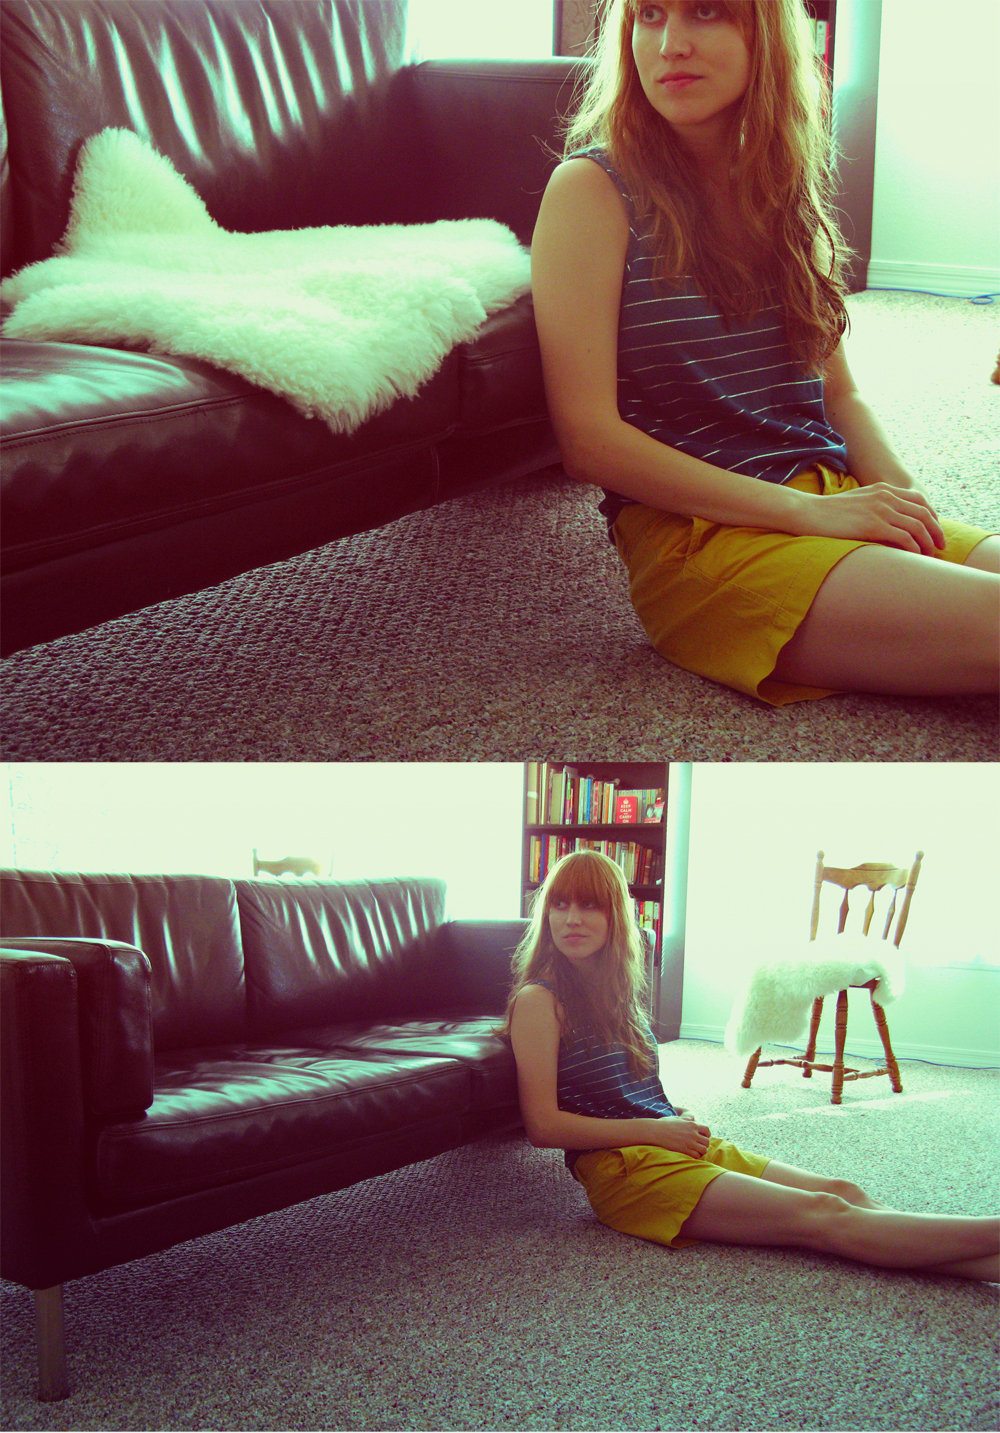 Self portrait - leather couch, sheepskin, sitting on floor - Photo a Day - August Photo Challenge